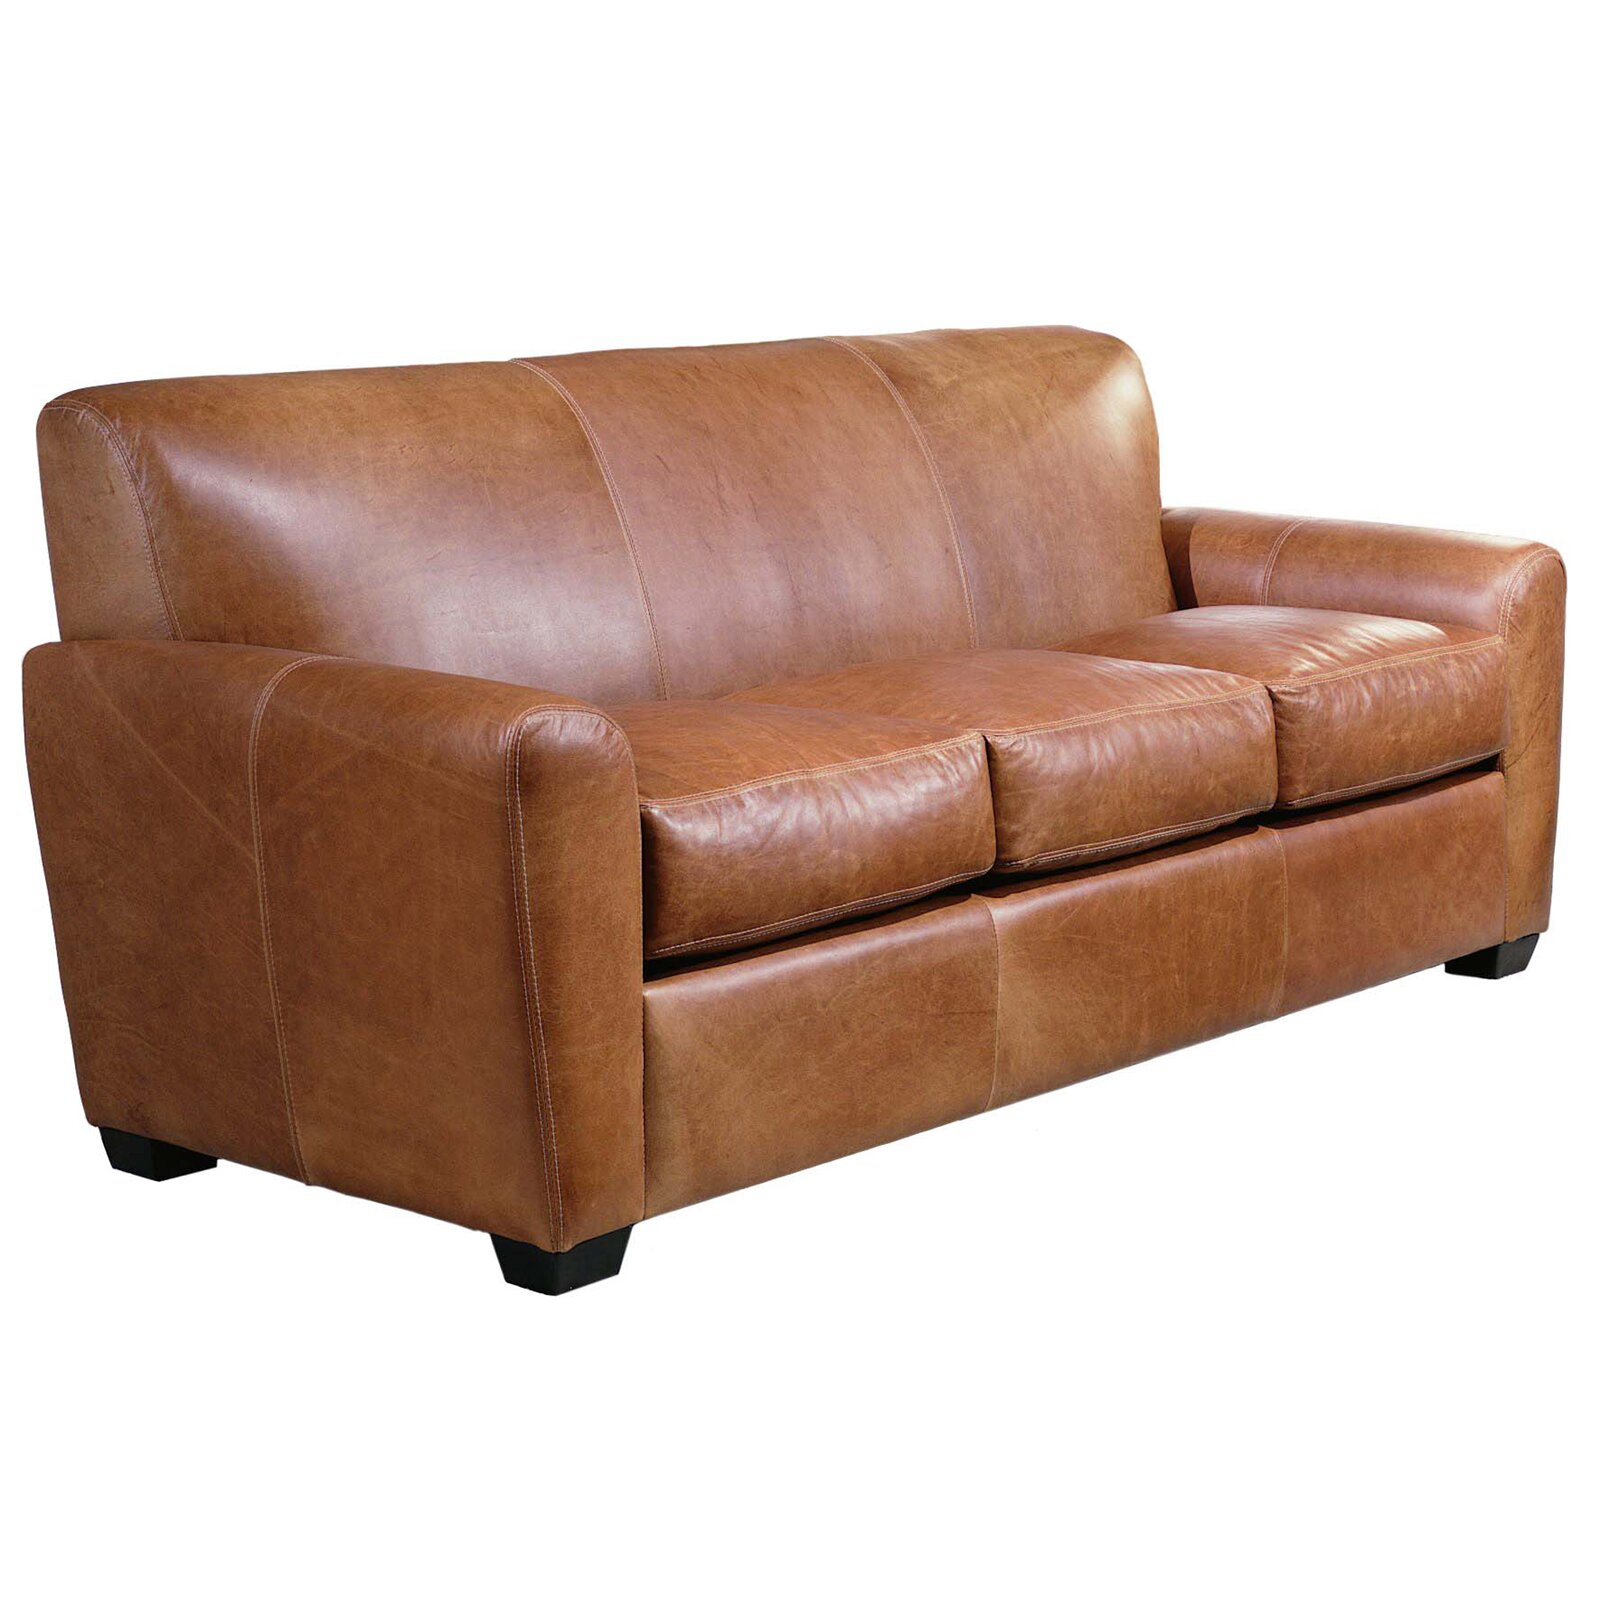 Omnia Leather Jackson Leather Sleeper Sofa Wayfair